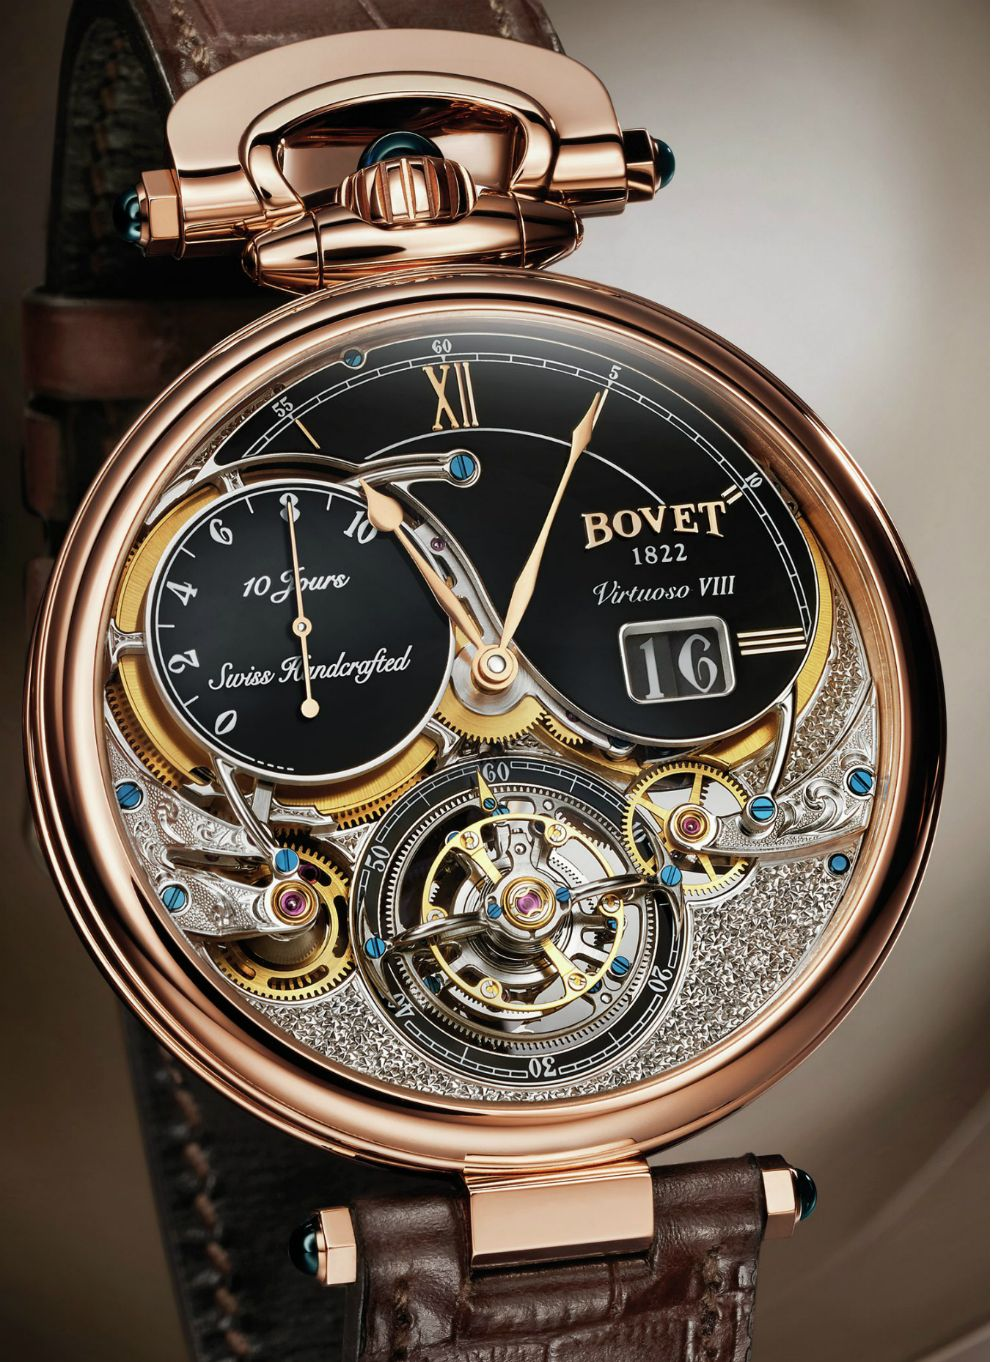 2017 marks the 195th anniversary of Bovet and the brand has just released  the new Bovet d02f580239